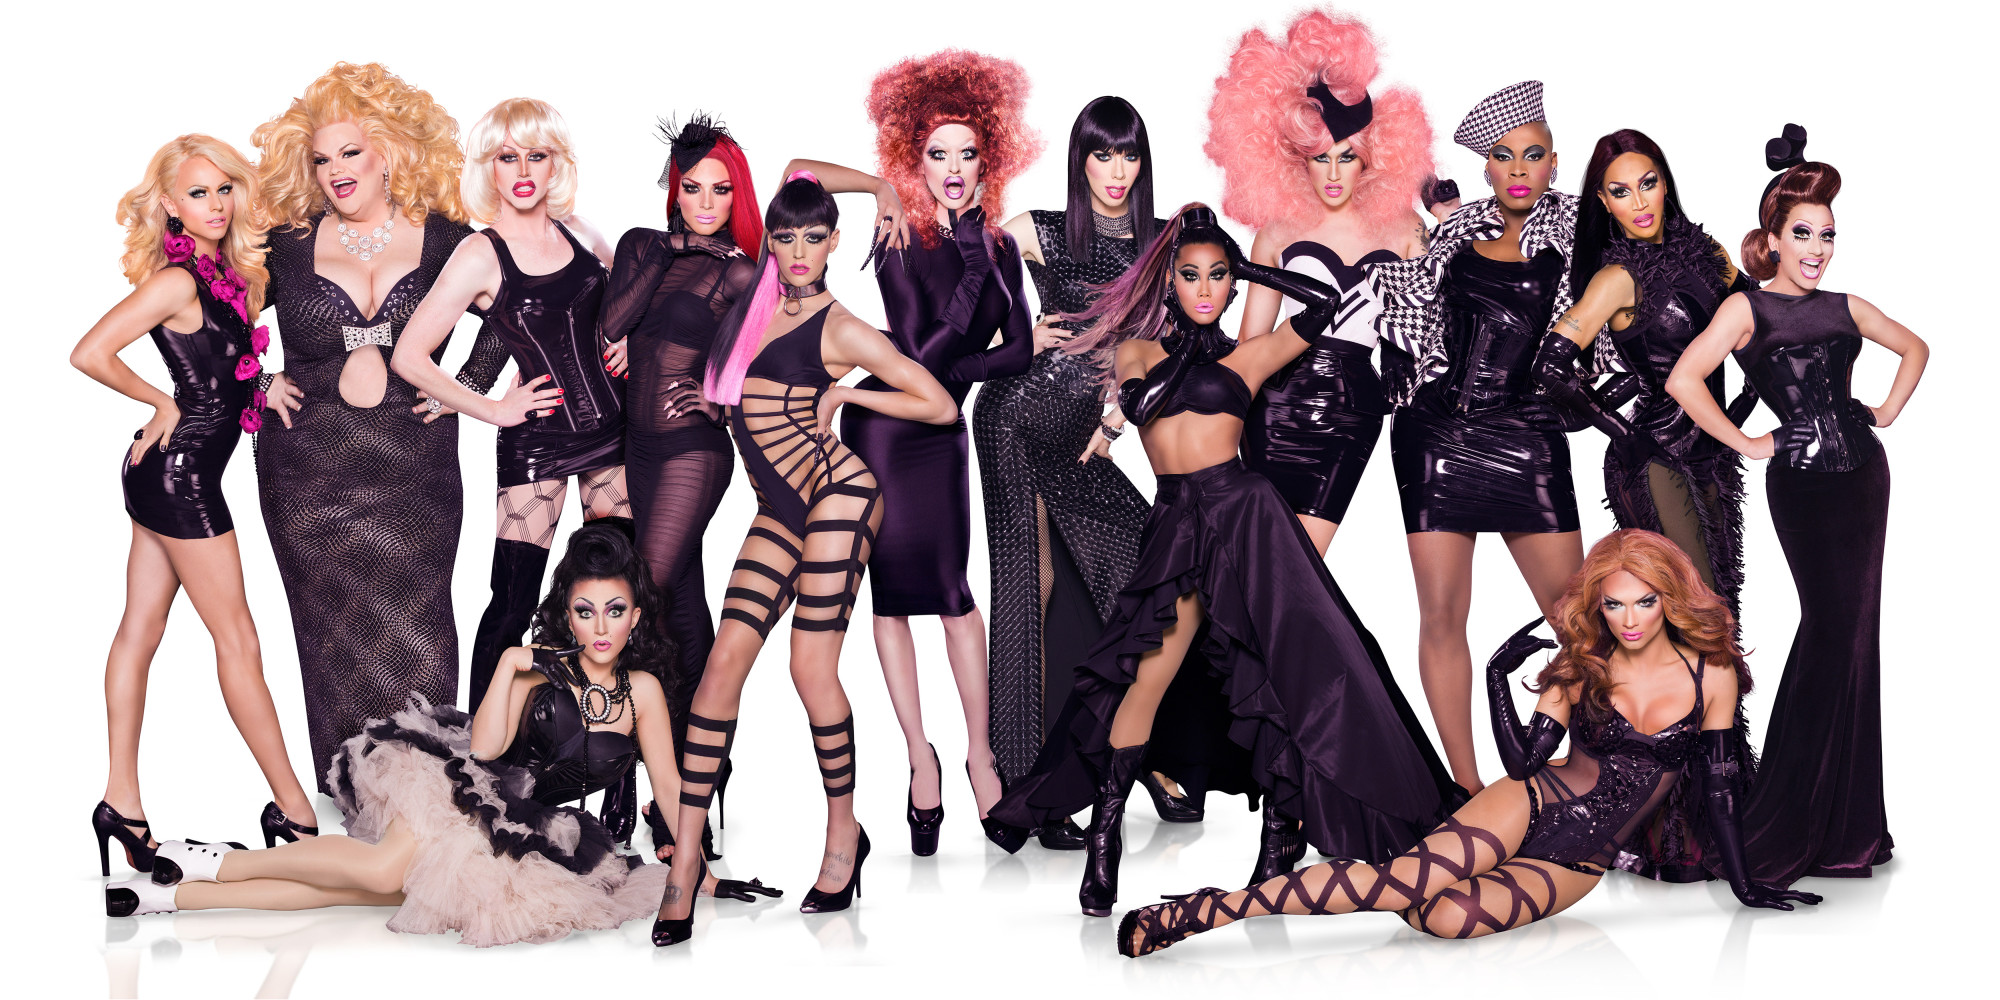 39 rupaul 39 s drag race 39 season six queens competing on reality show released huffpost